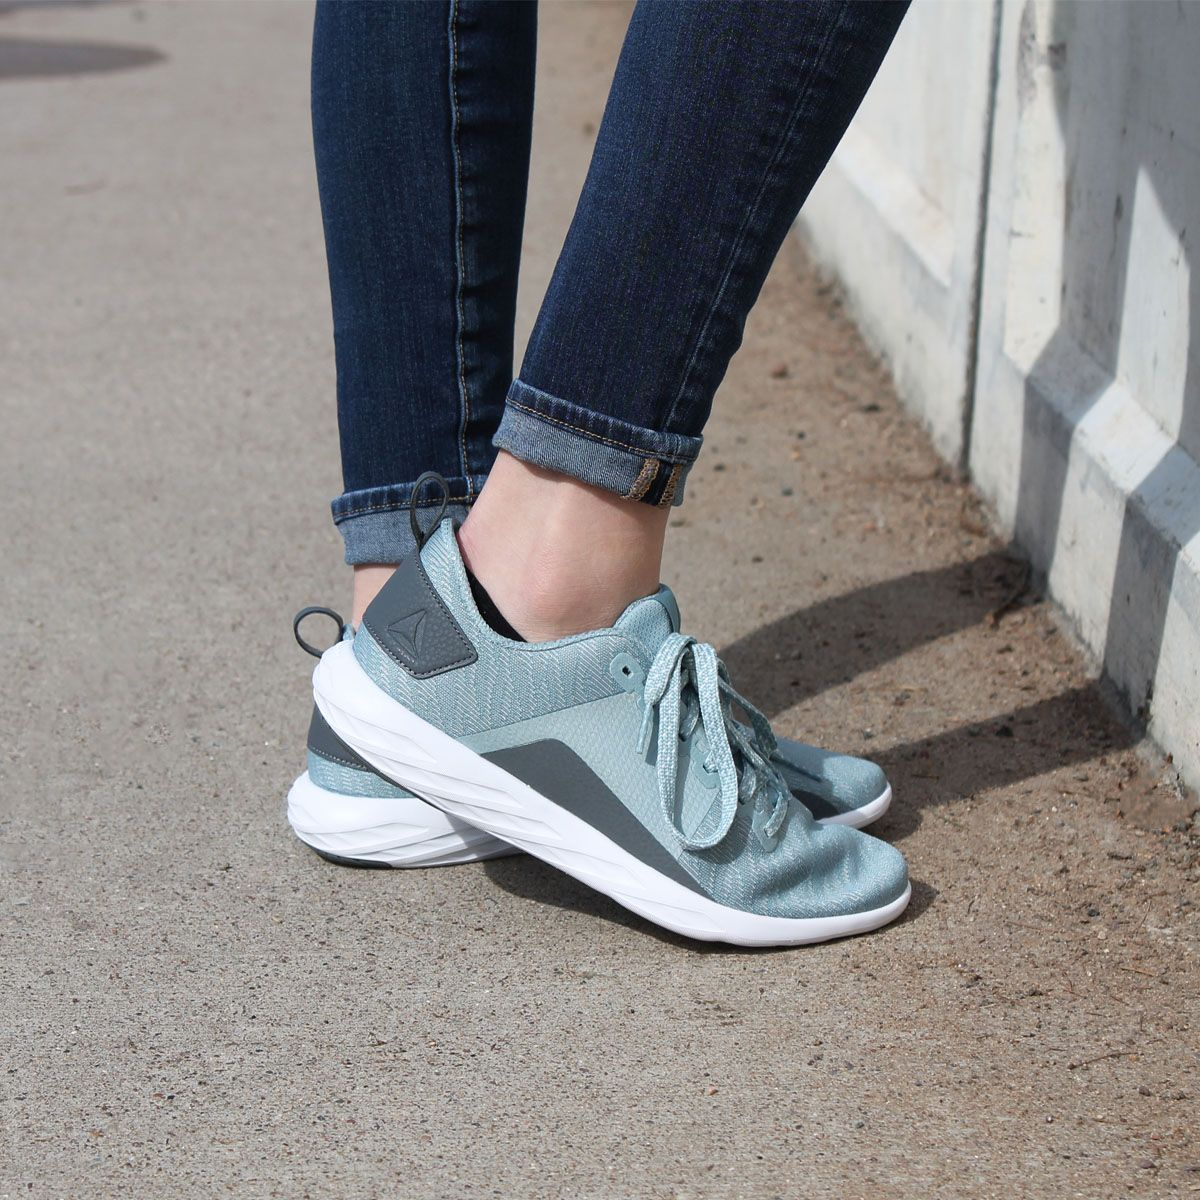 This AstroRide shoe delivers top-tier walking comfort every step of the way   athleisure 3d79a02c5